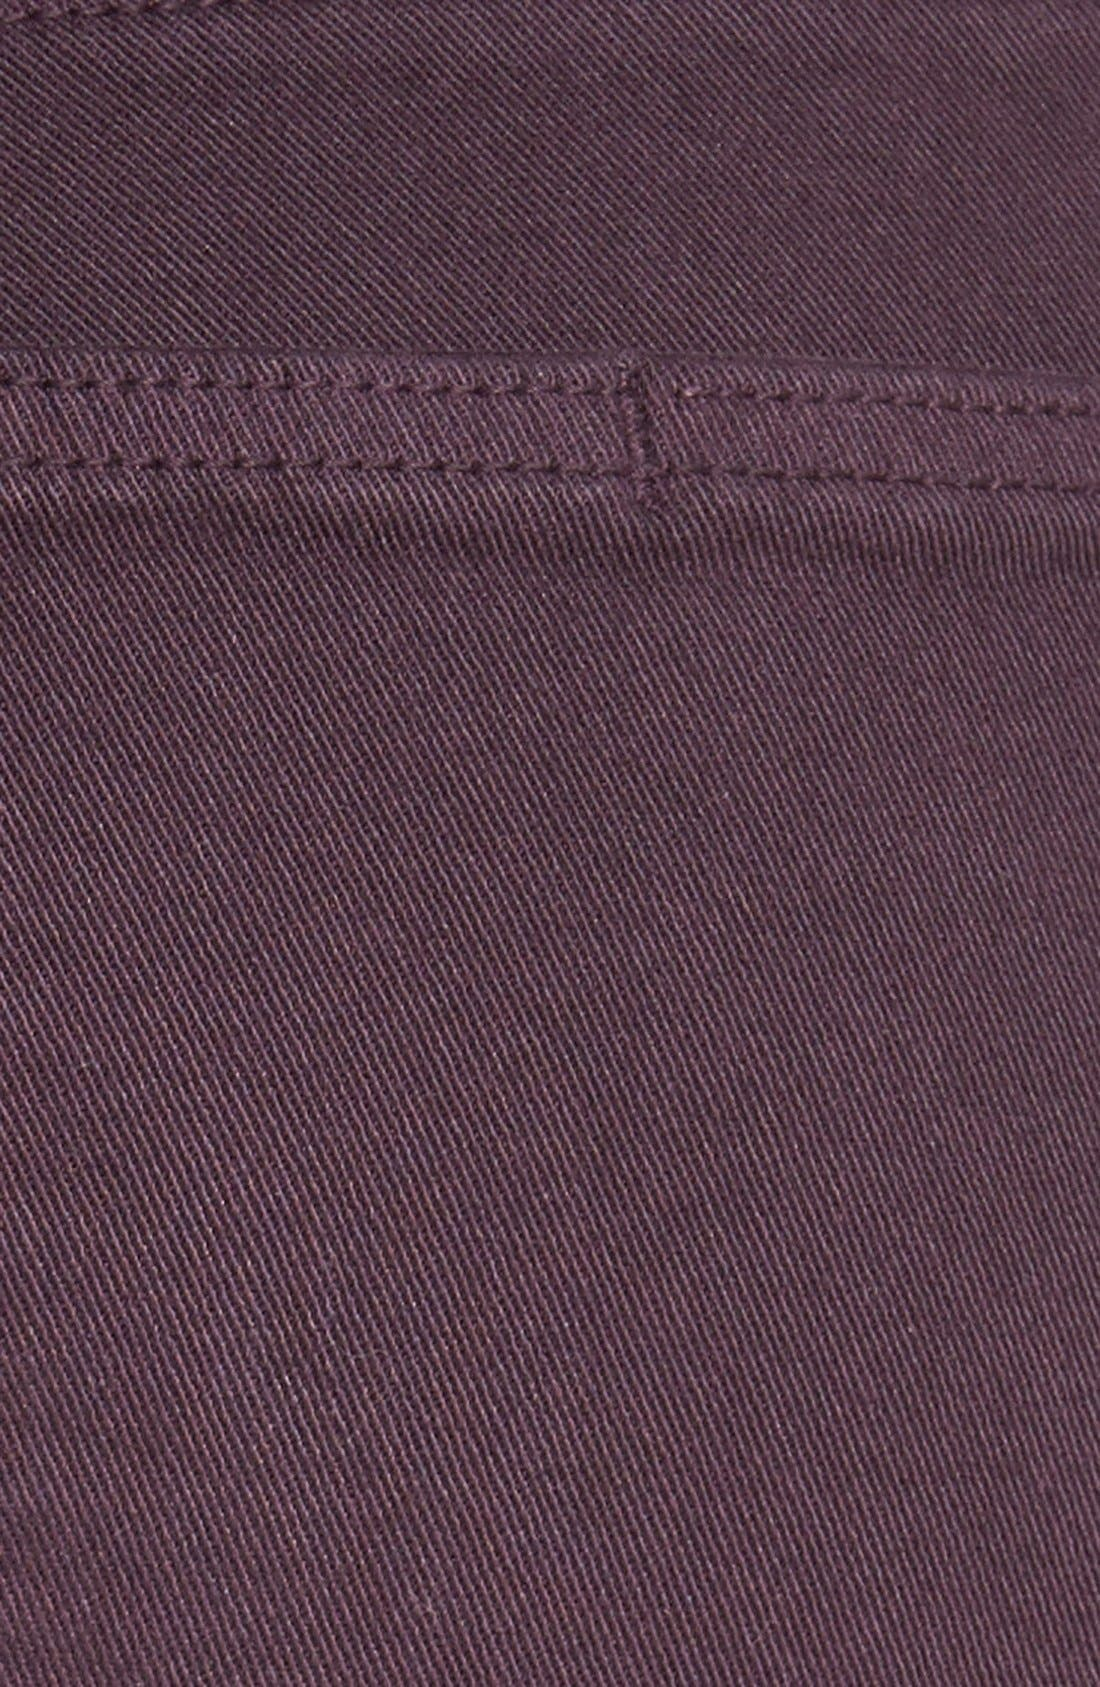 Alternate Image 7  - Paige Denim 'Verdugo' Ankle Skinny Jeans (Autumn Plum) (Nordstrom Exclusive)